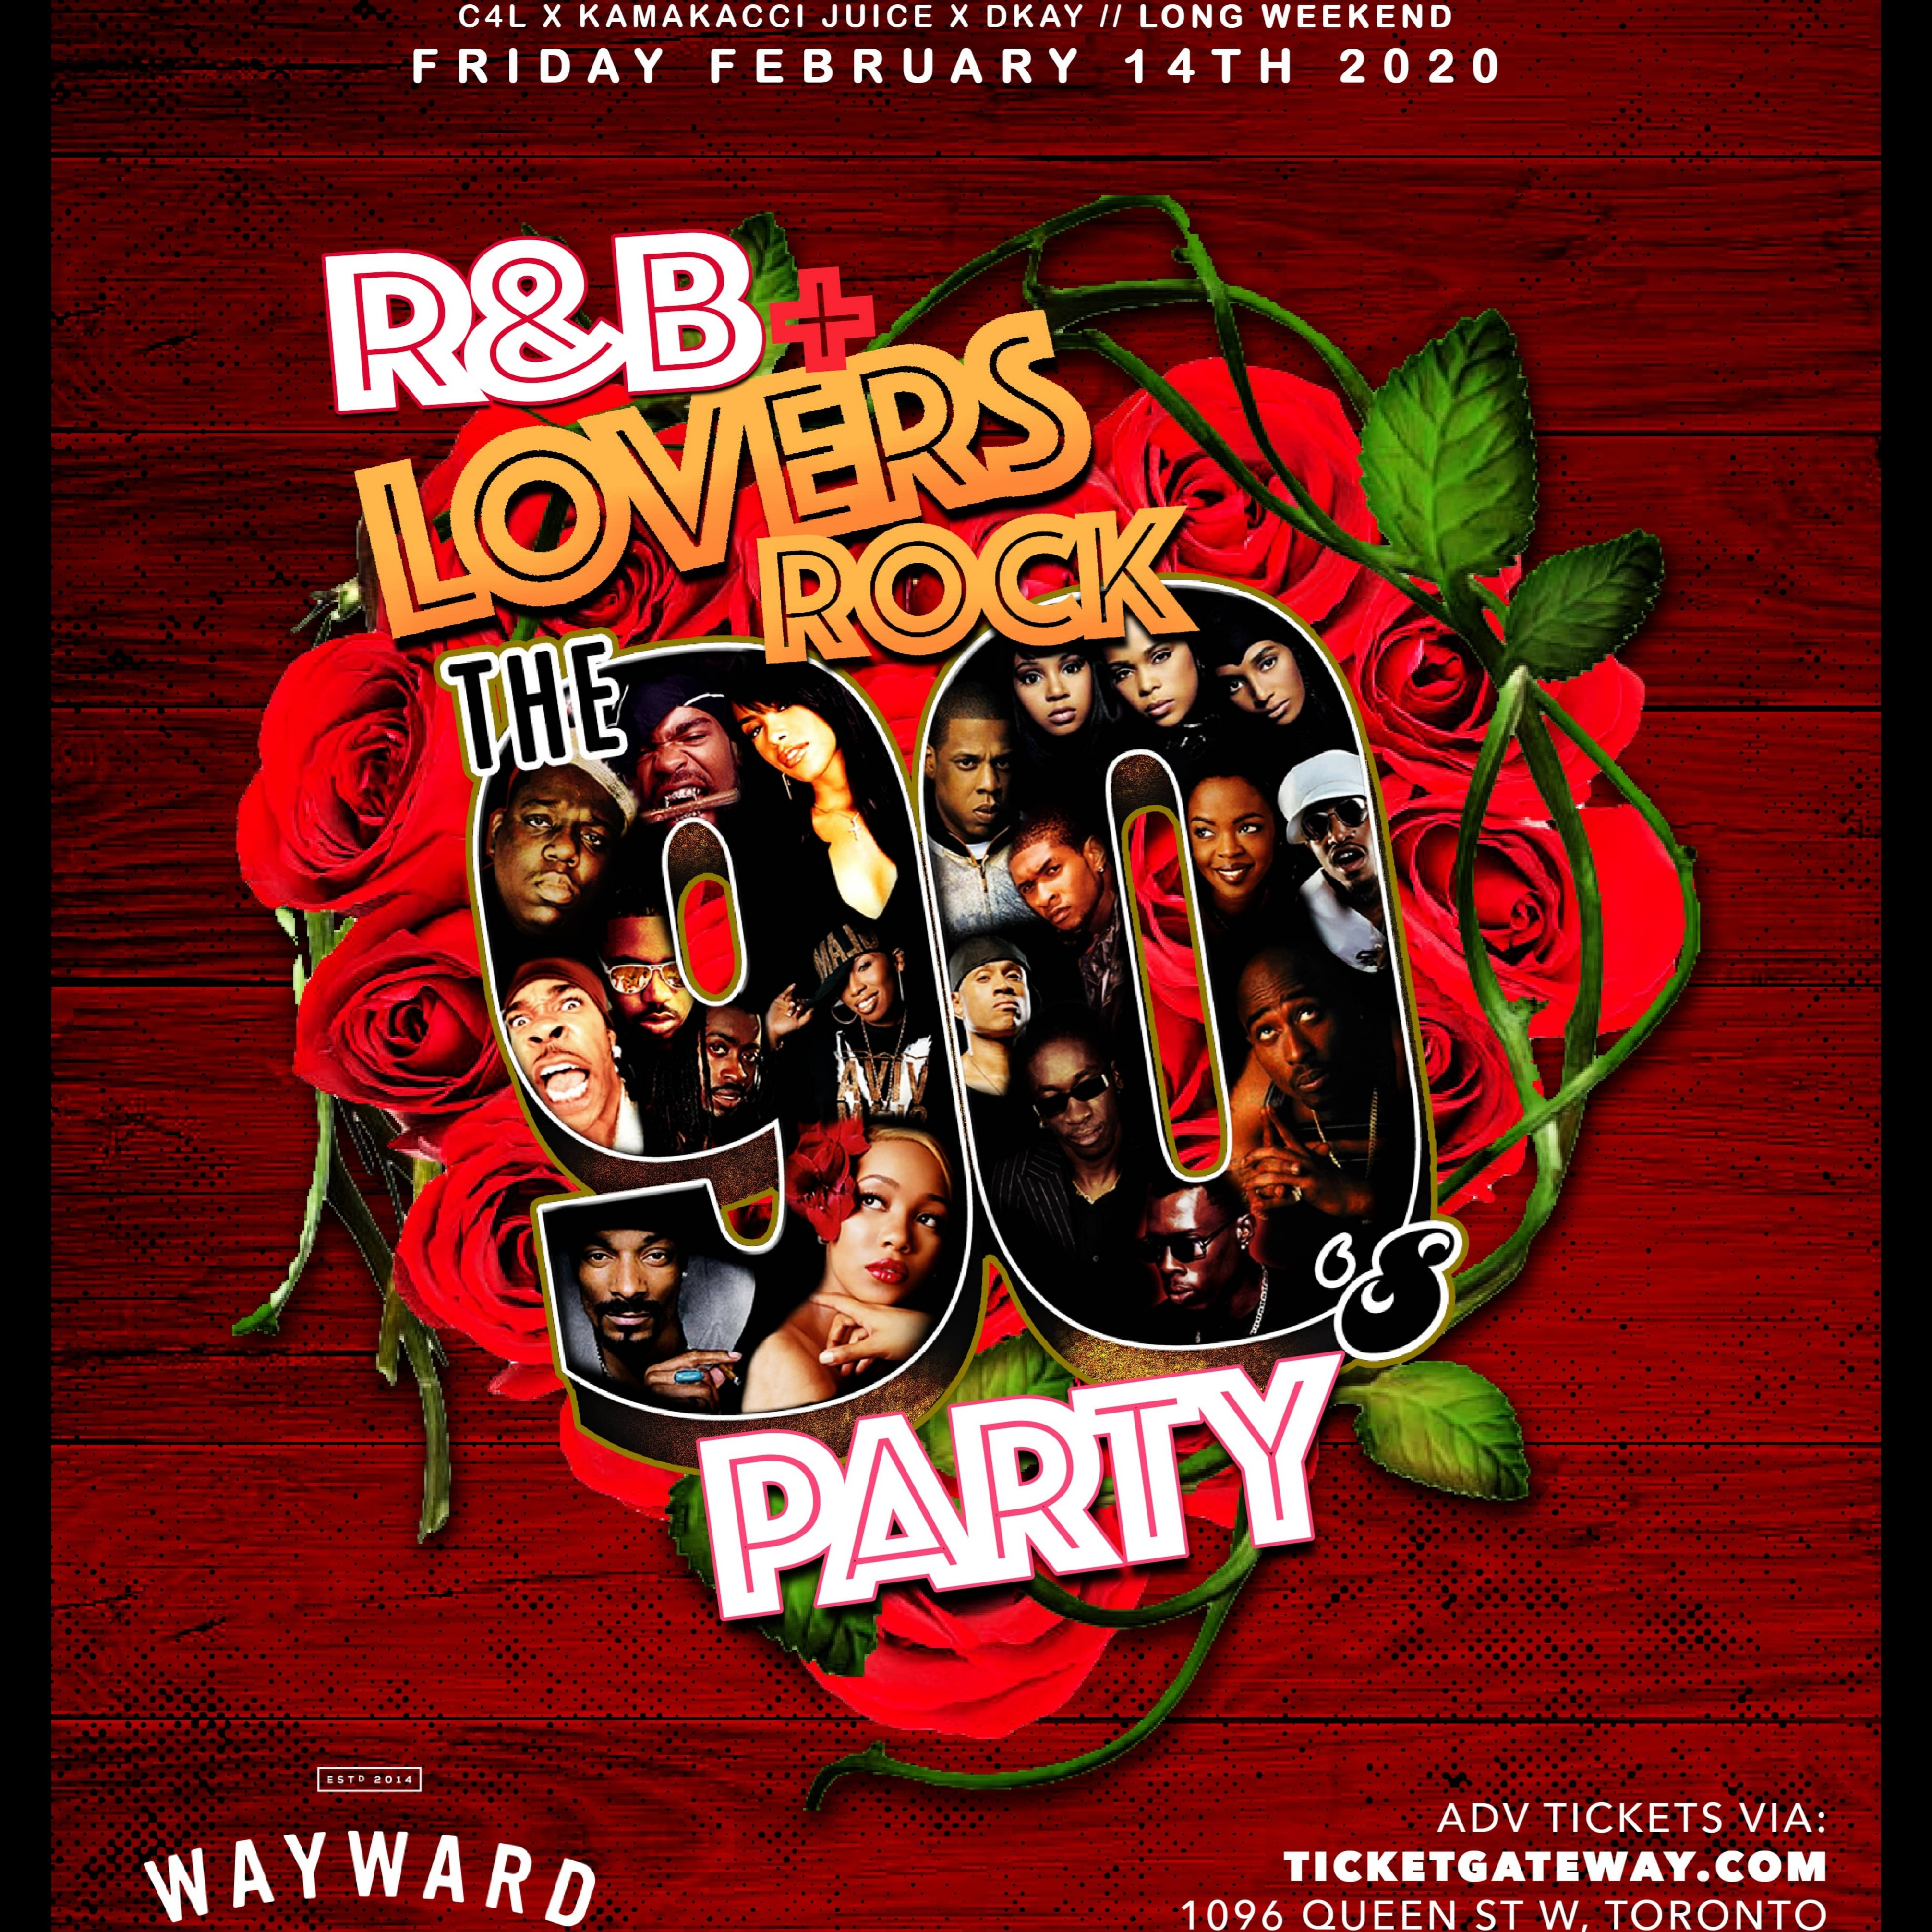 The90sParty 'R&B & Lovers Rock' edition